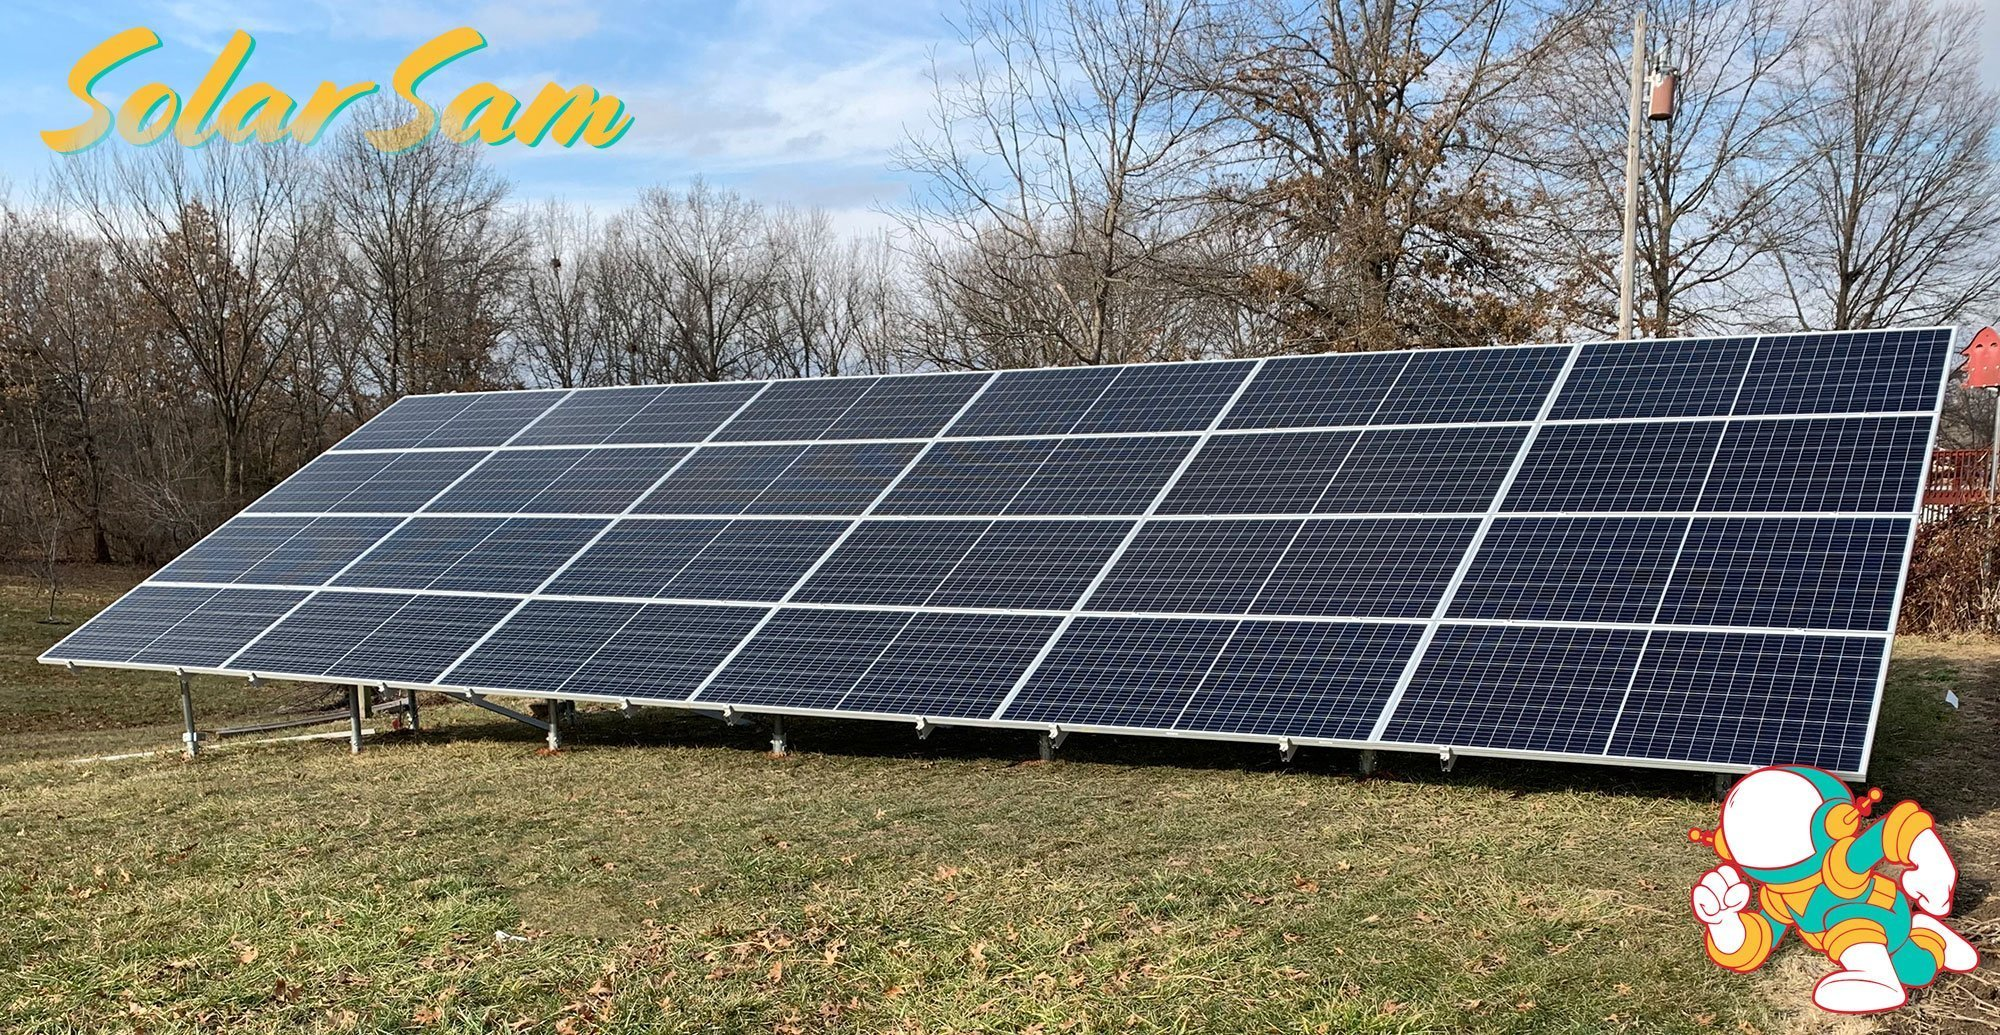 Reams 1 Solar Panels Installed in Centralia Missouri by Professional Solar Installers Solar Sam using Monocrystalline Solar Panels SMA Electricity Energy Inverter Sunmodo Earth Ground Mount